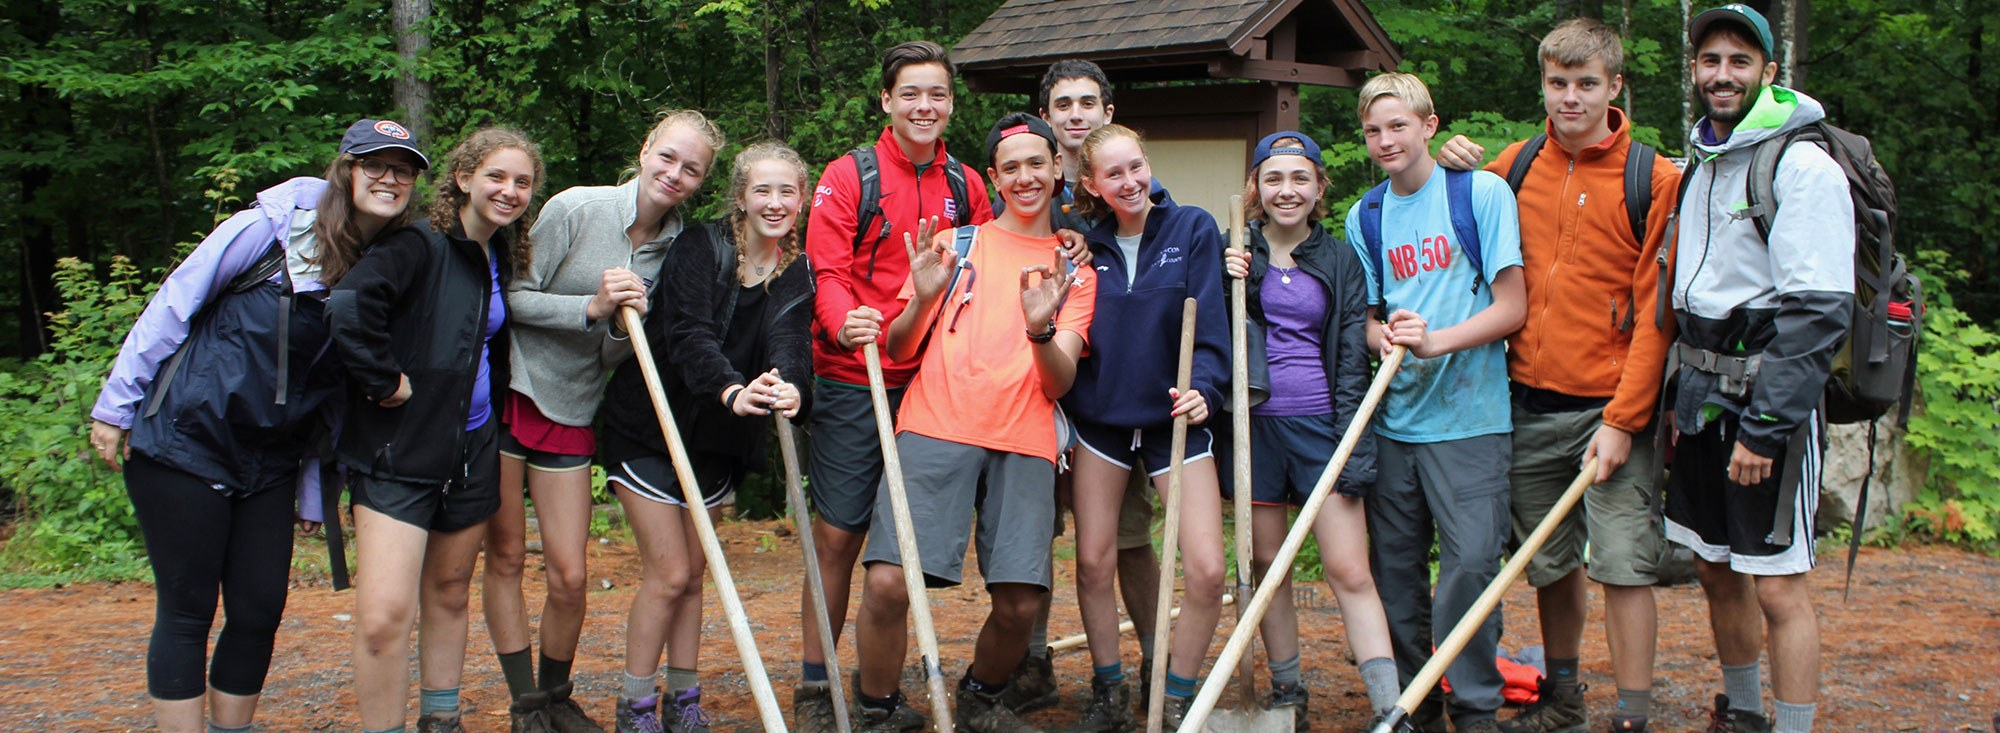 Campers Smiling and Holding Shovels